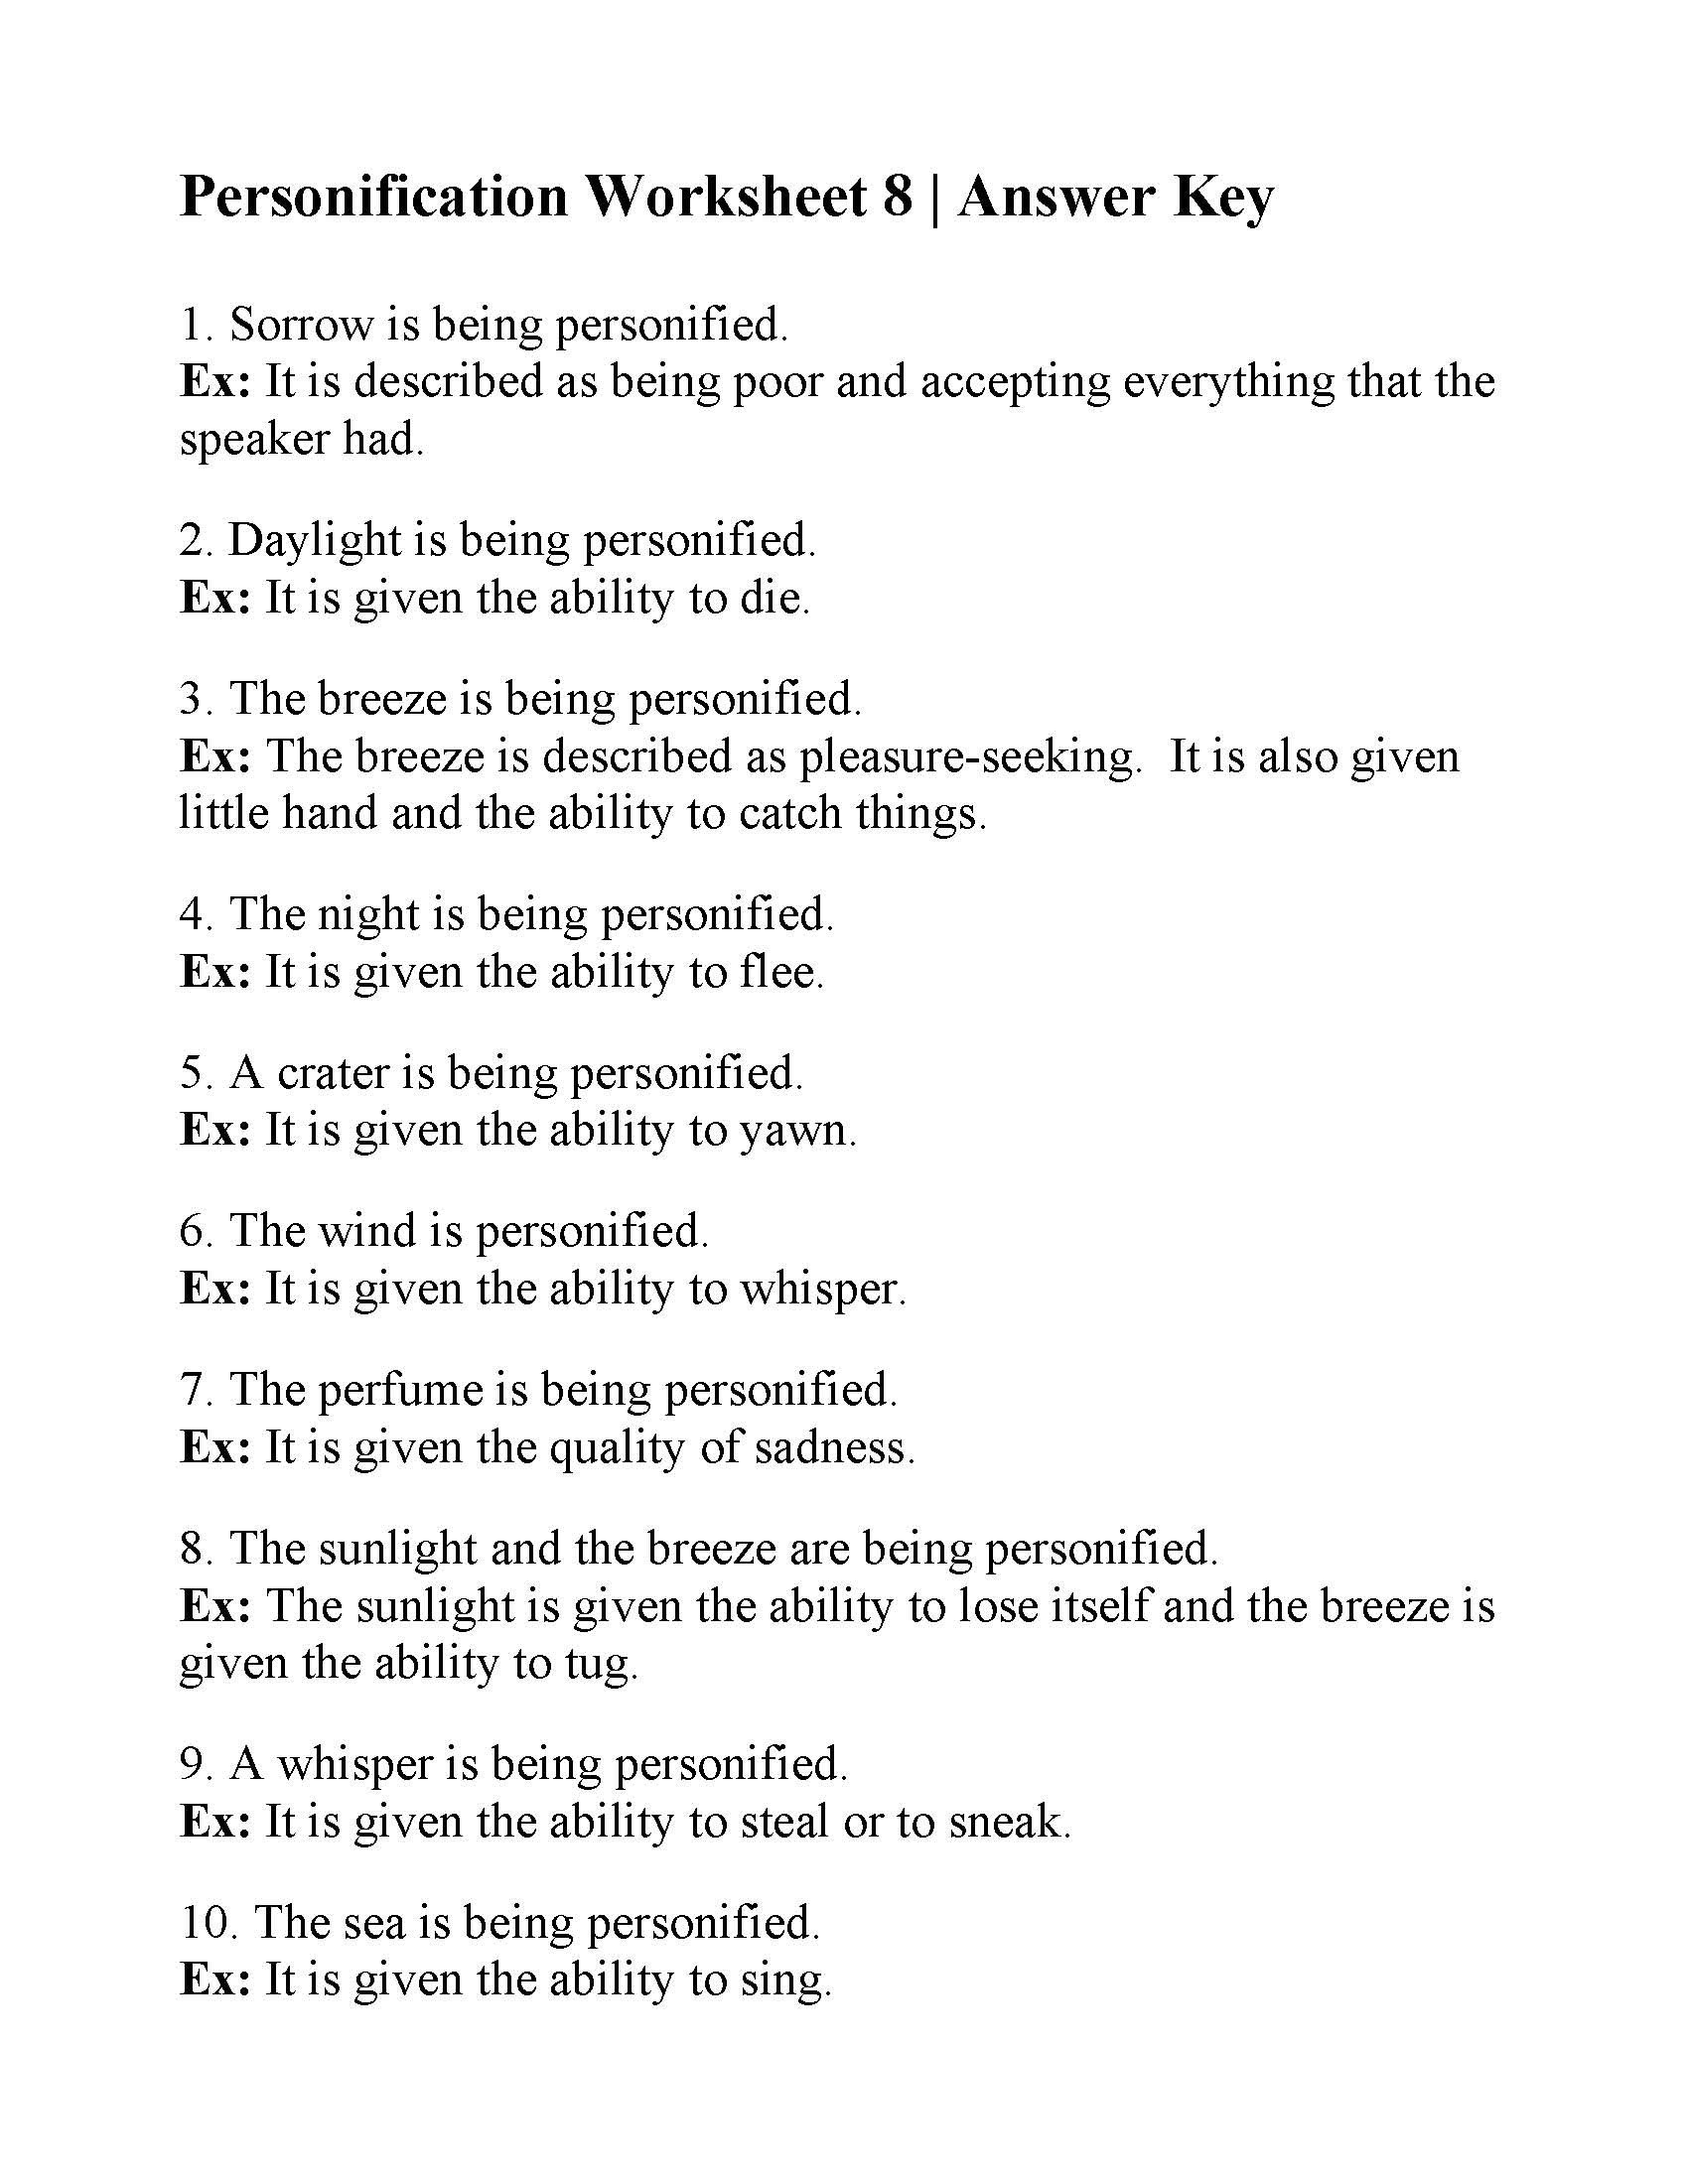 Free Personification Worksheets Personification Worksheet Answers Worksheets Math Kumon